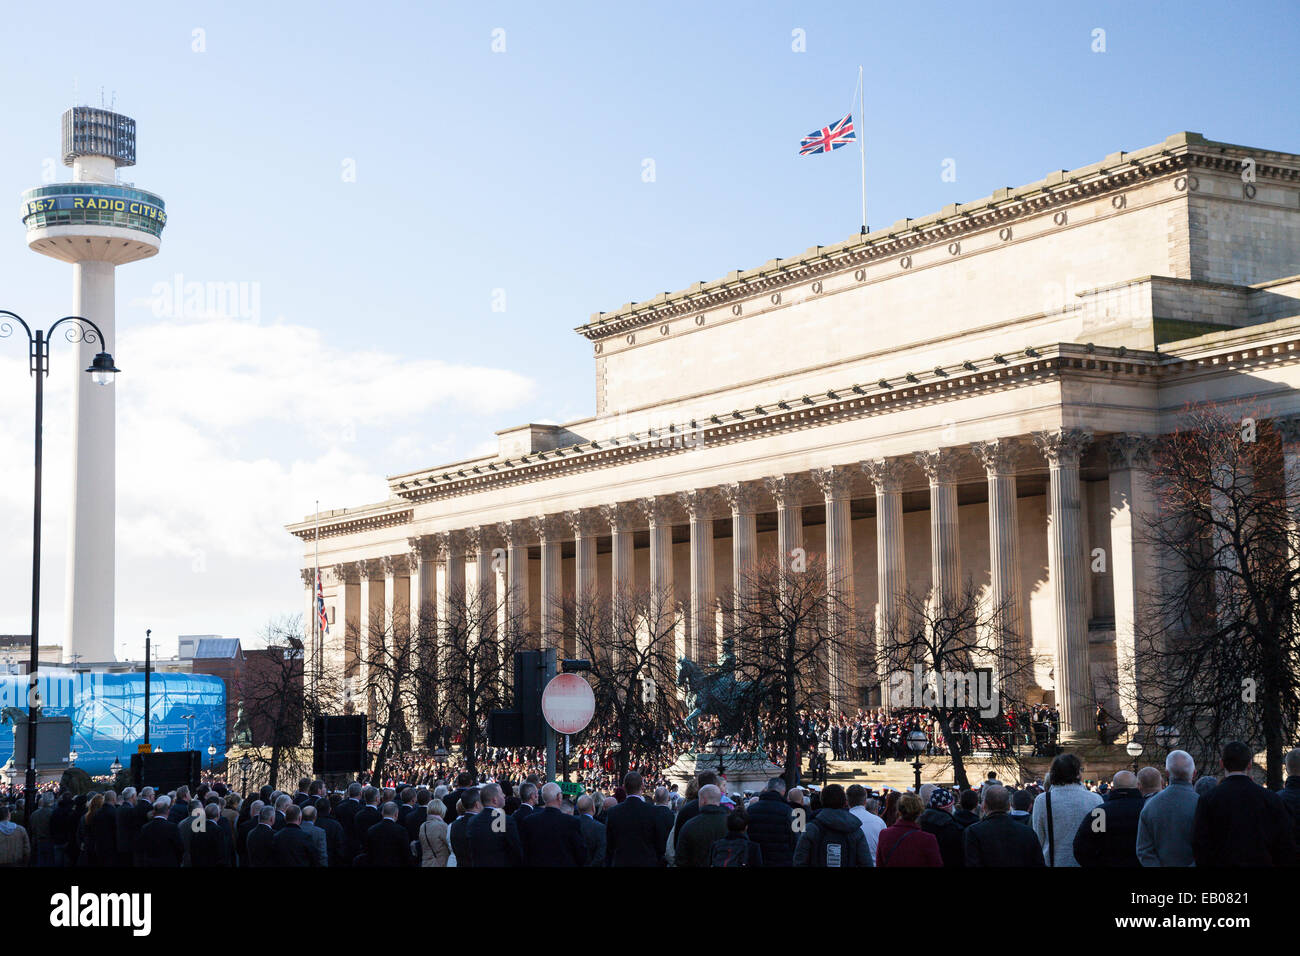 The Union Flag at half mast on top of St George's Hall in Liverpool on Remembrance Day 2013. - Stock Image